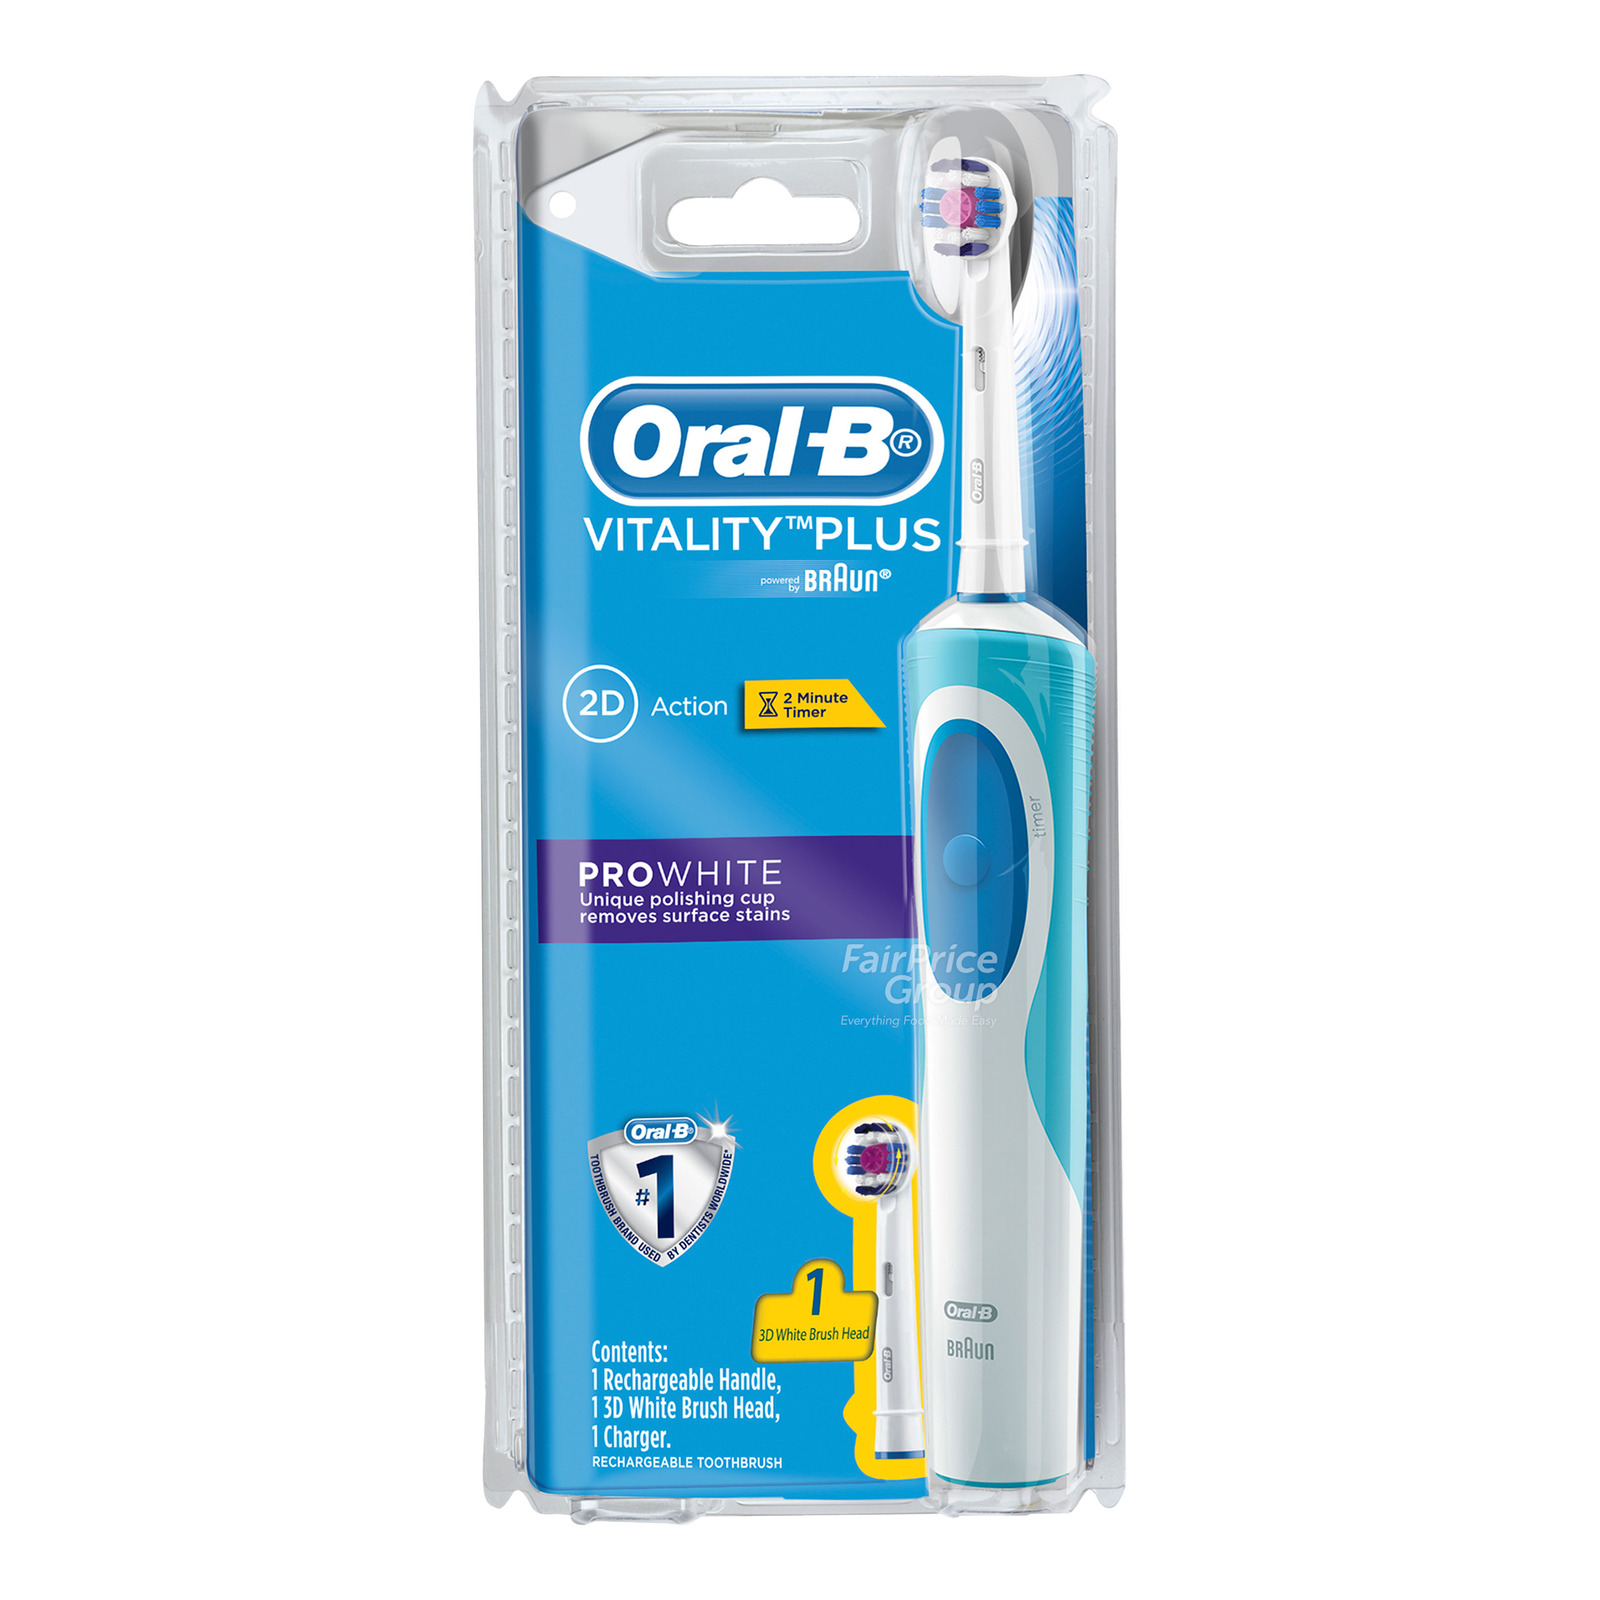 Oral-B Electric Rechargable Toothbrush - 2D Action